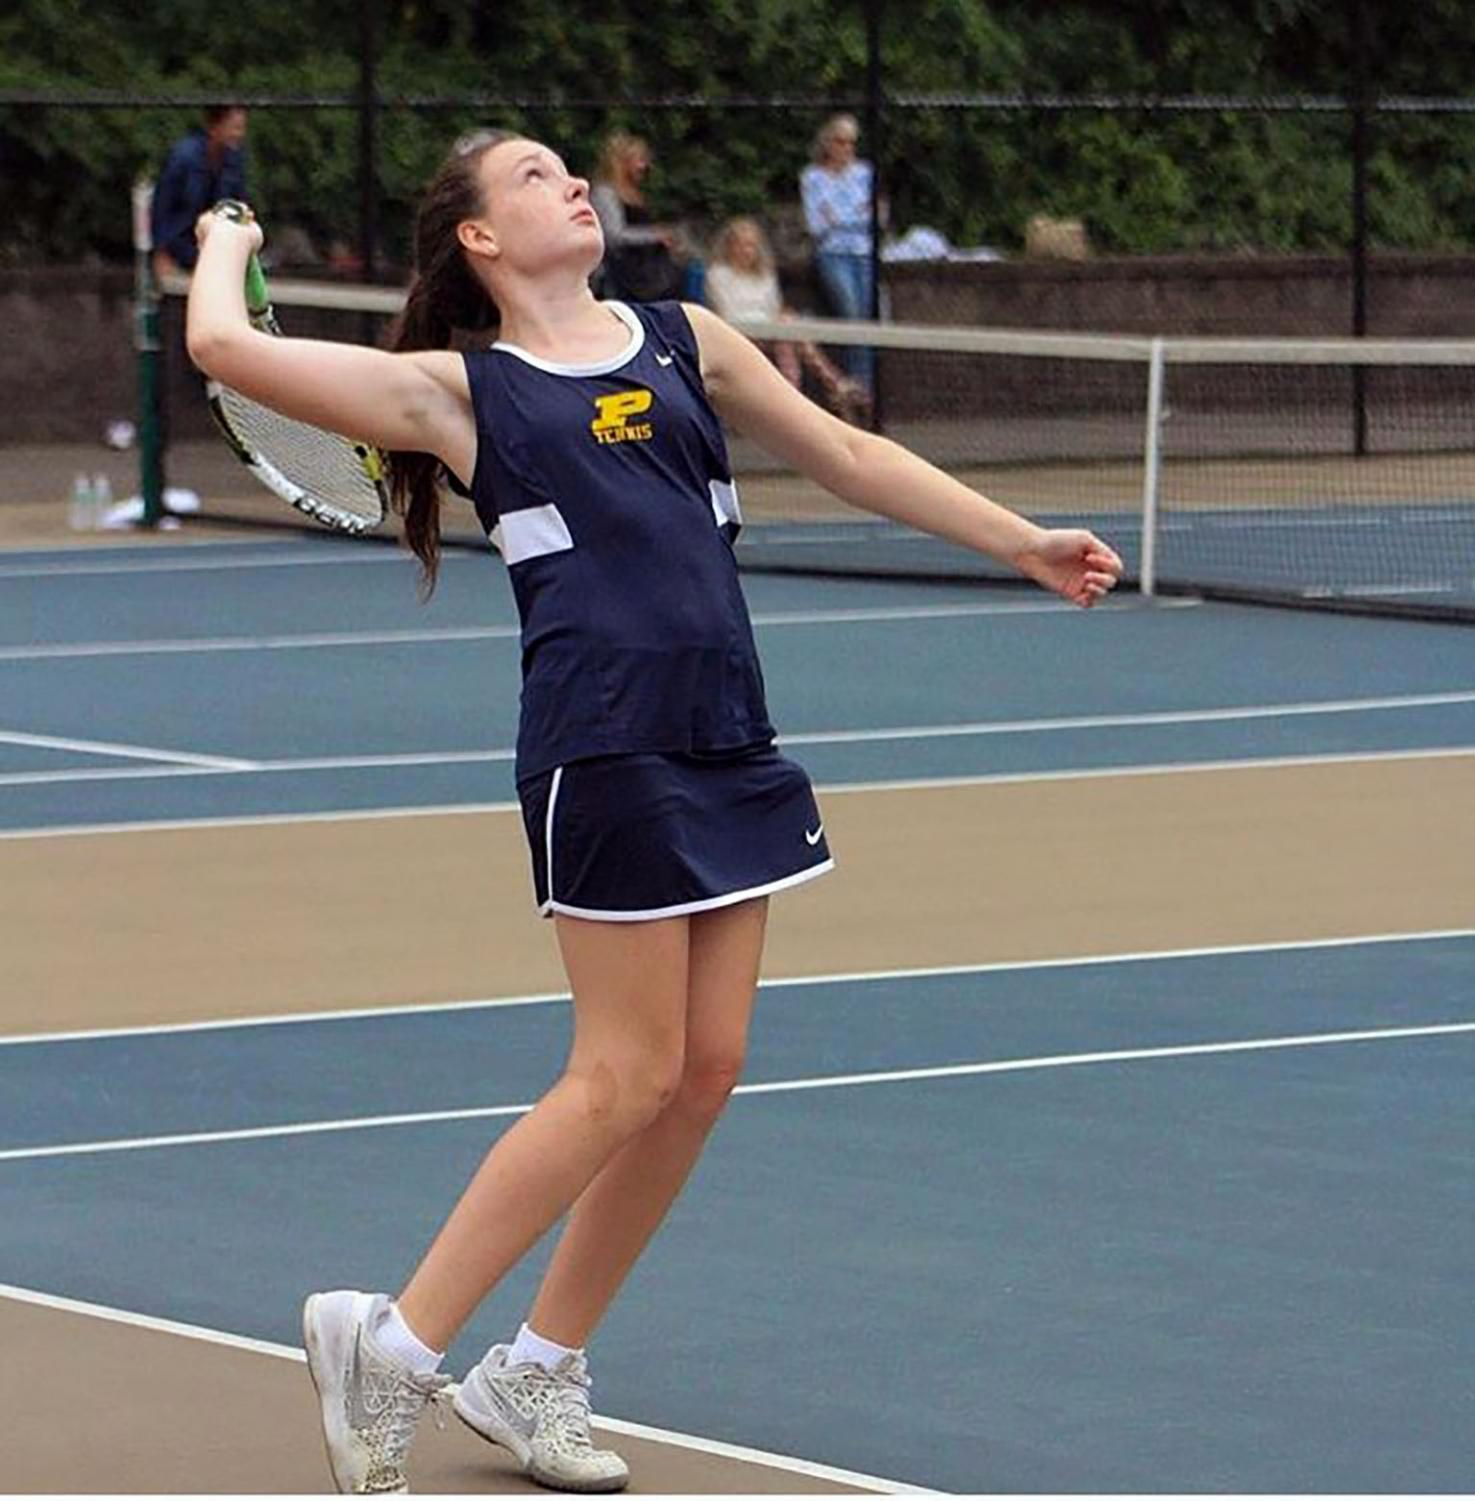 Junior Catherine Taubner serves the ball with intense concentration.